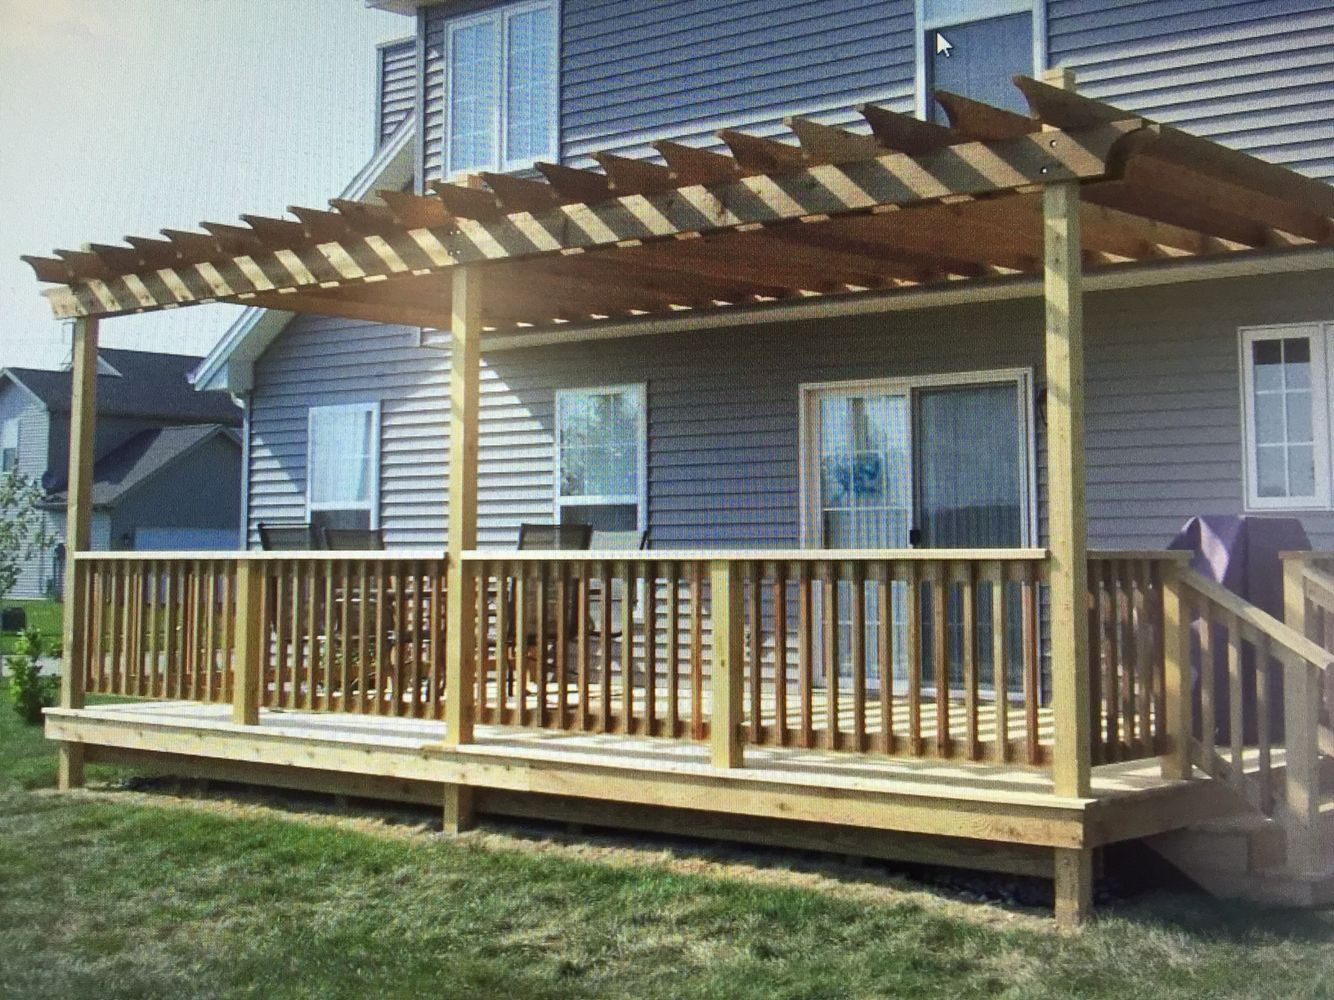 Pergola With Posts In Handrail Outdoor Pergola Pergola Patio